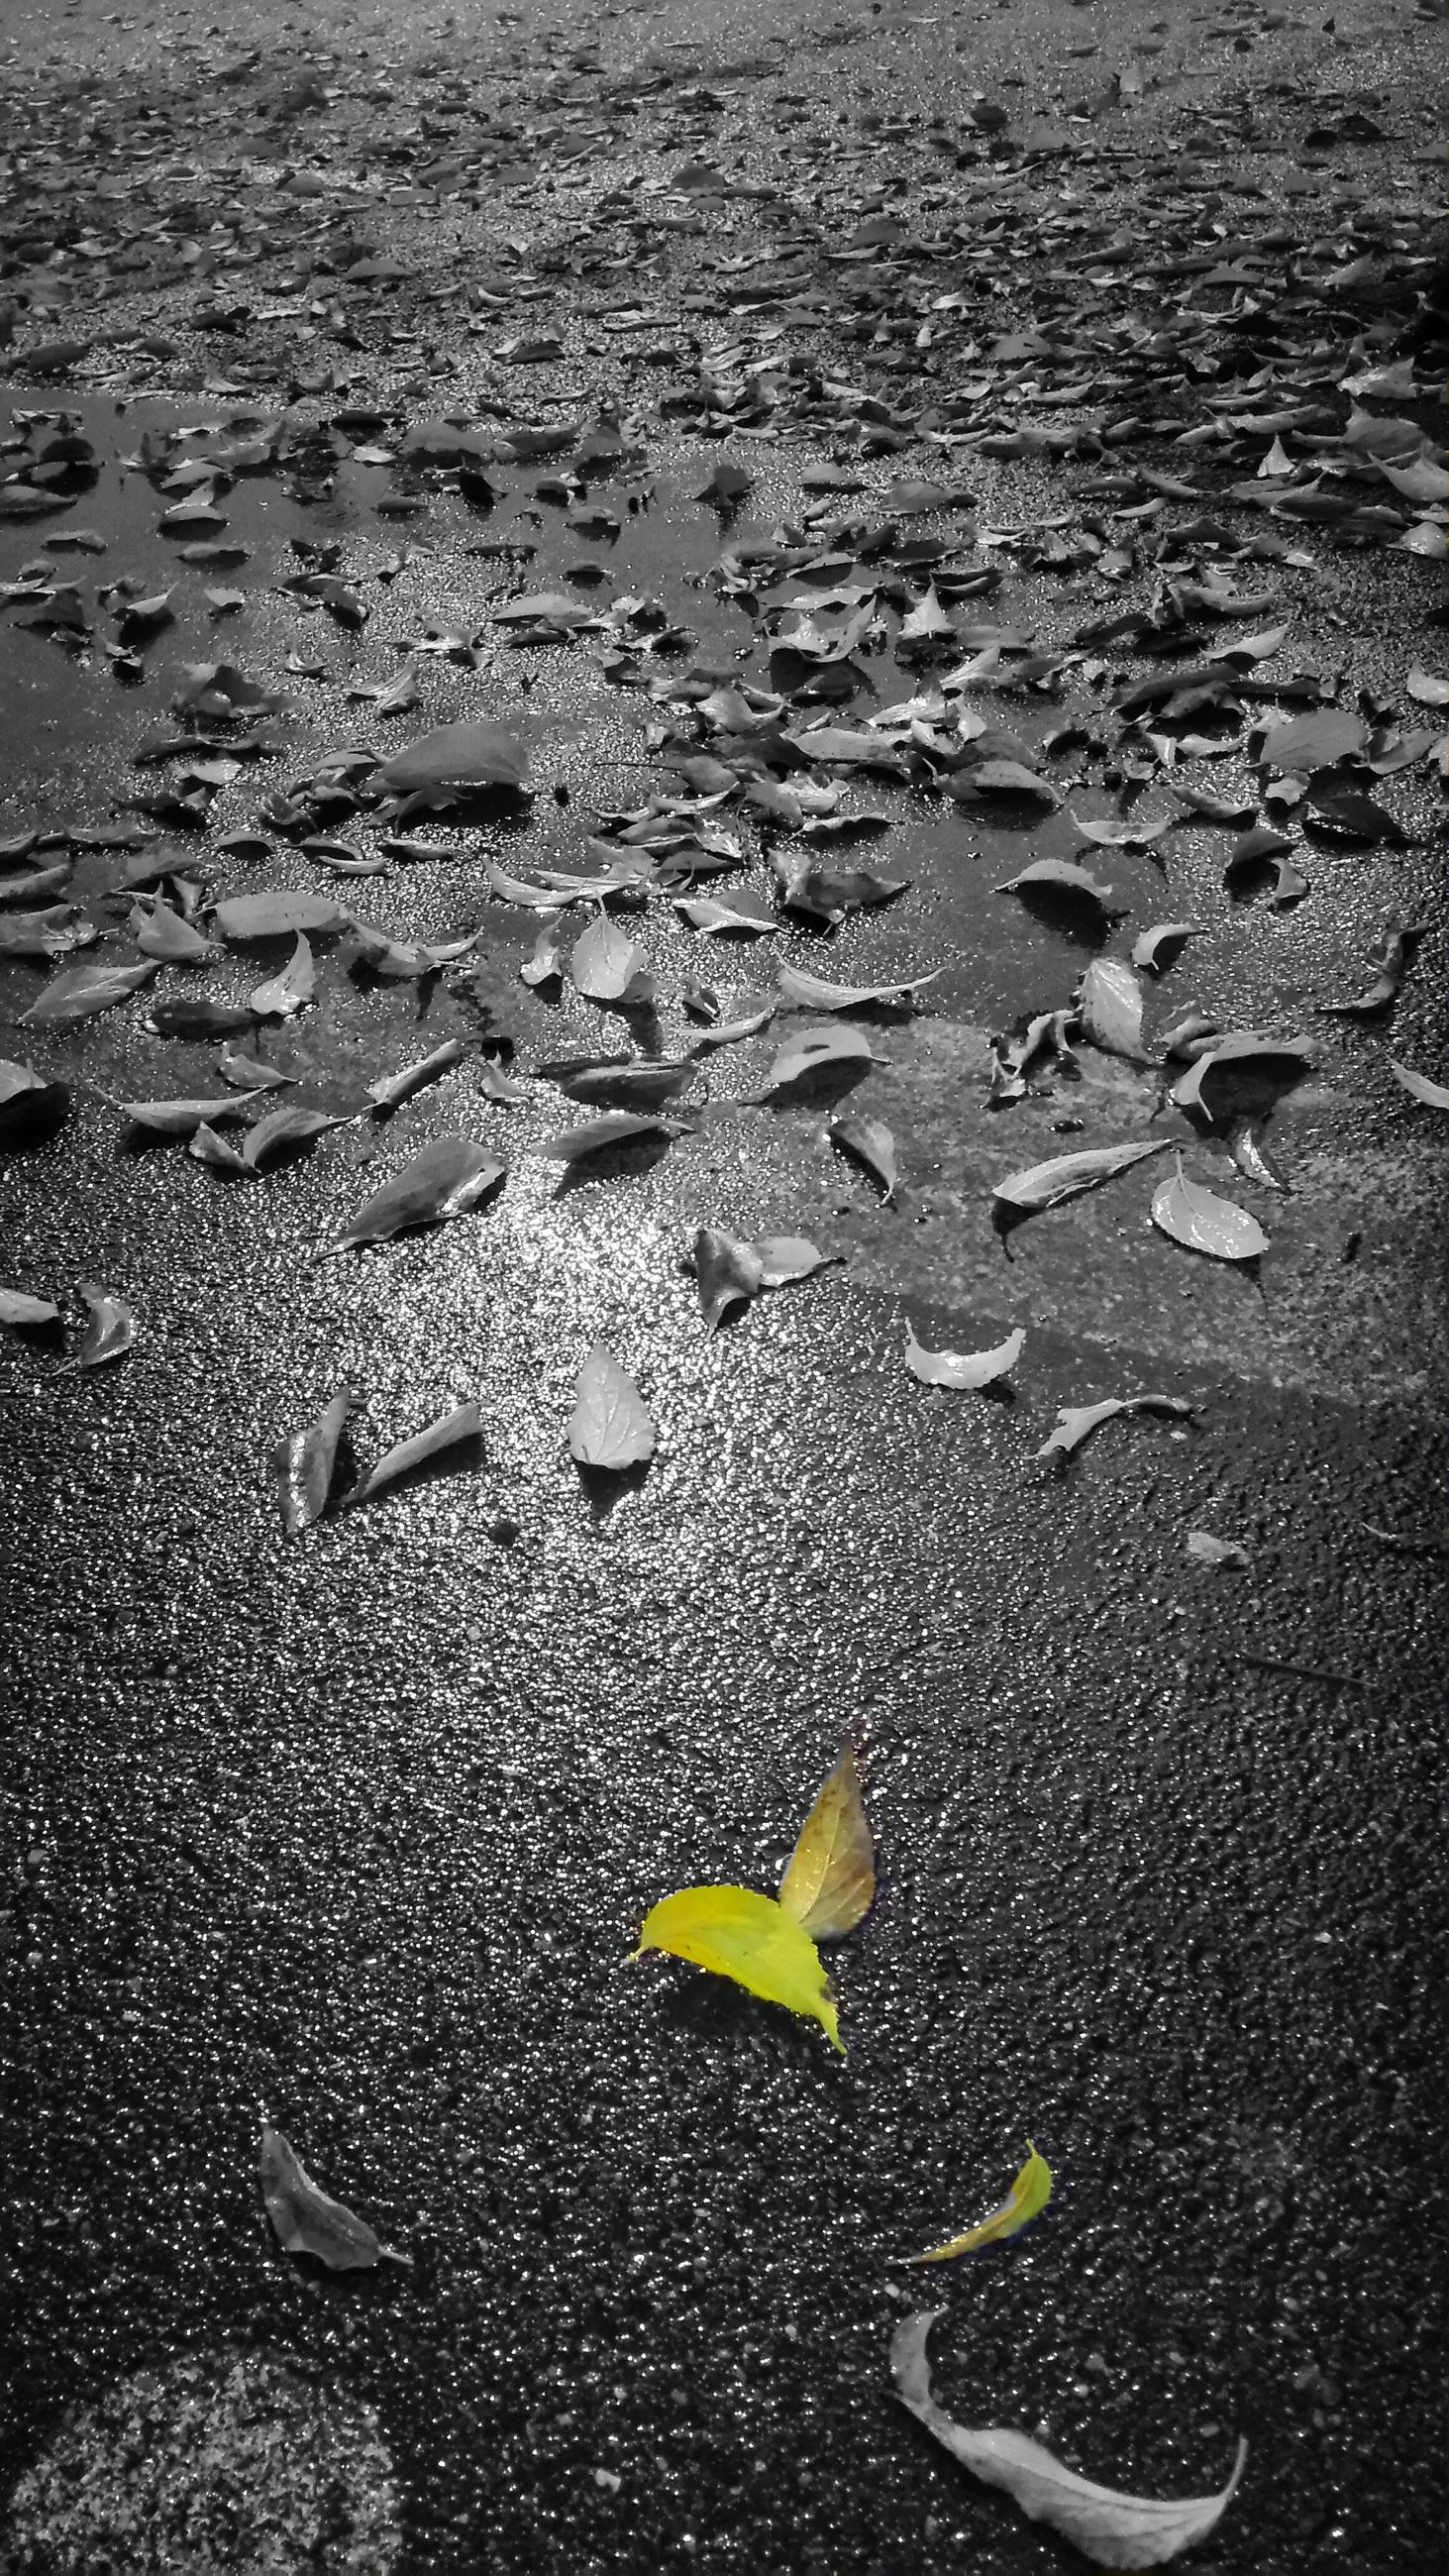 leaf, sand, nature, autumn, no people, outdoors, beach, change, day, yellow, beauty in nature, close-up, fragility, maple